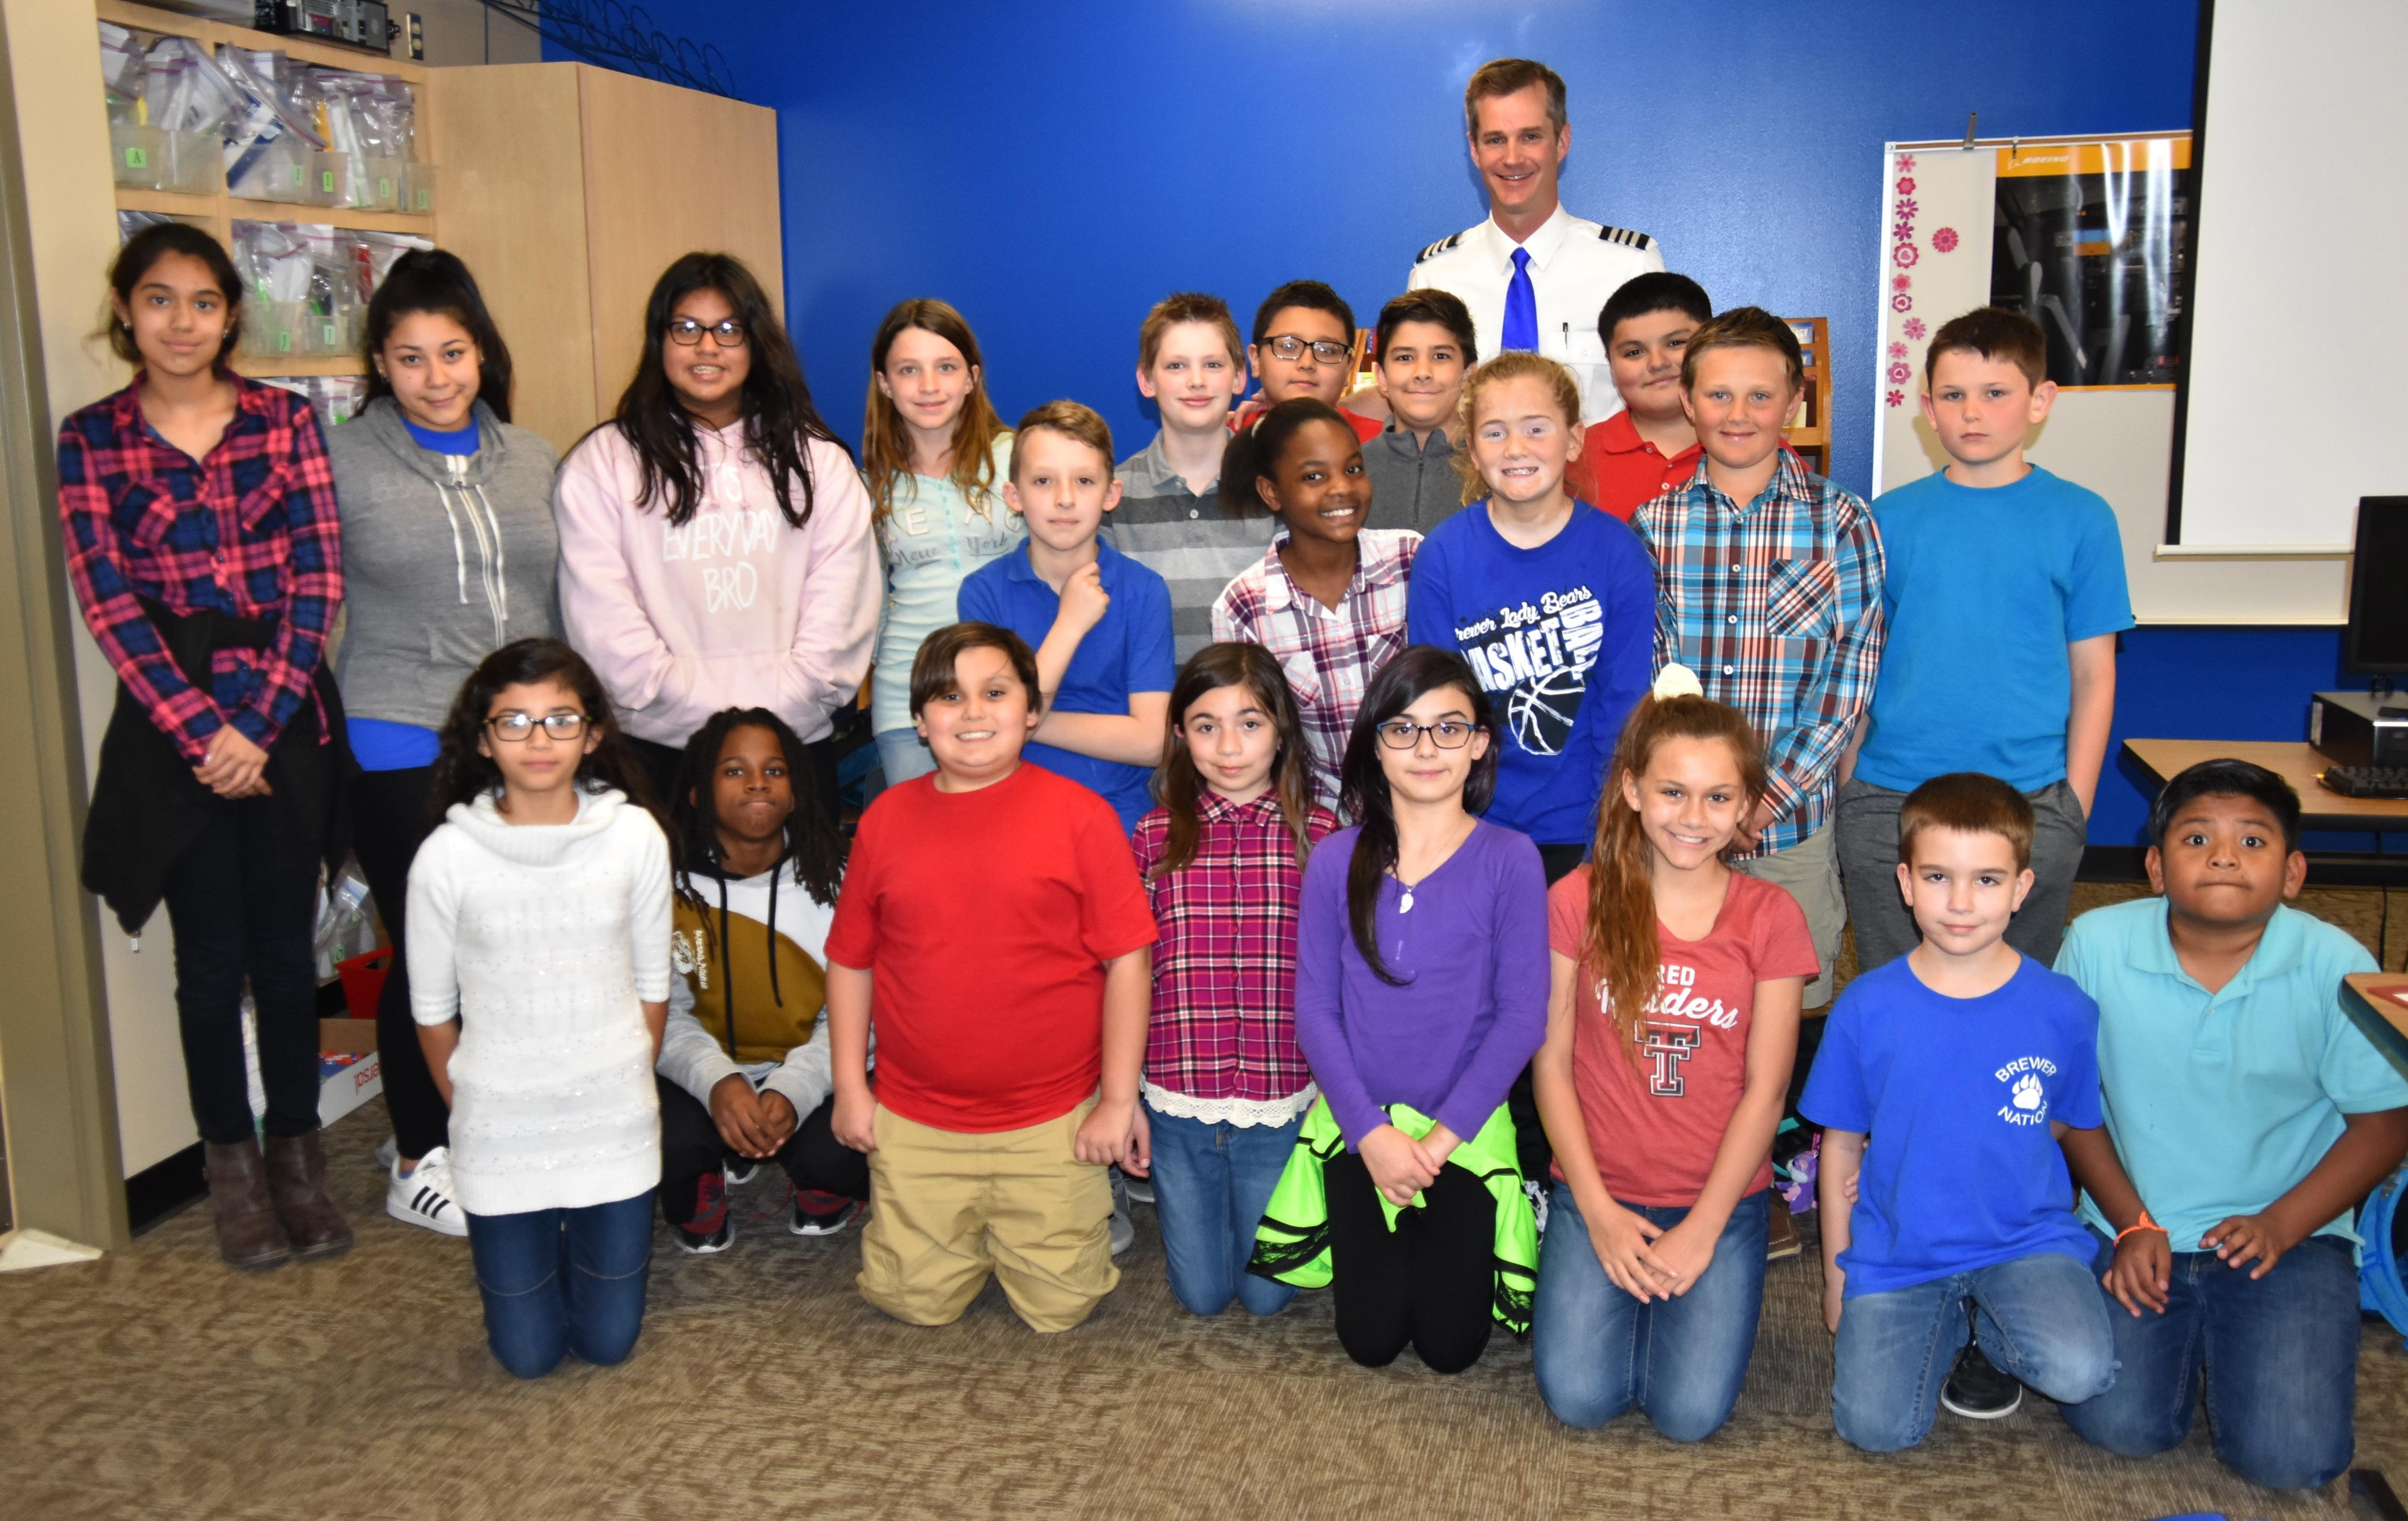 Fine Arts Academy fifth and sixth graders in the Career and Technical Education (CTE) class pose with Southwest Airlines pilot Scott Morrison.